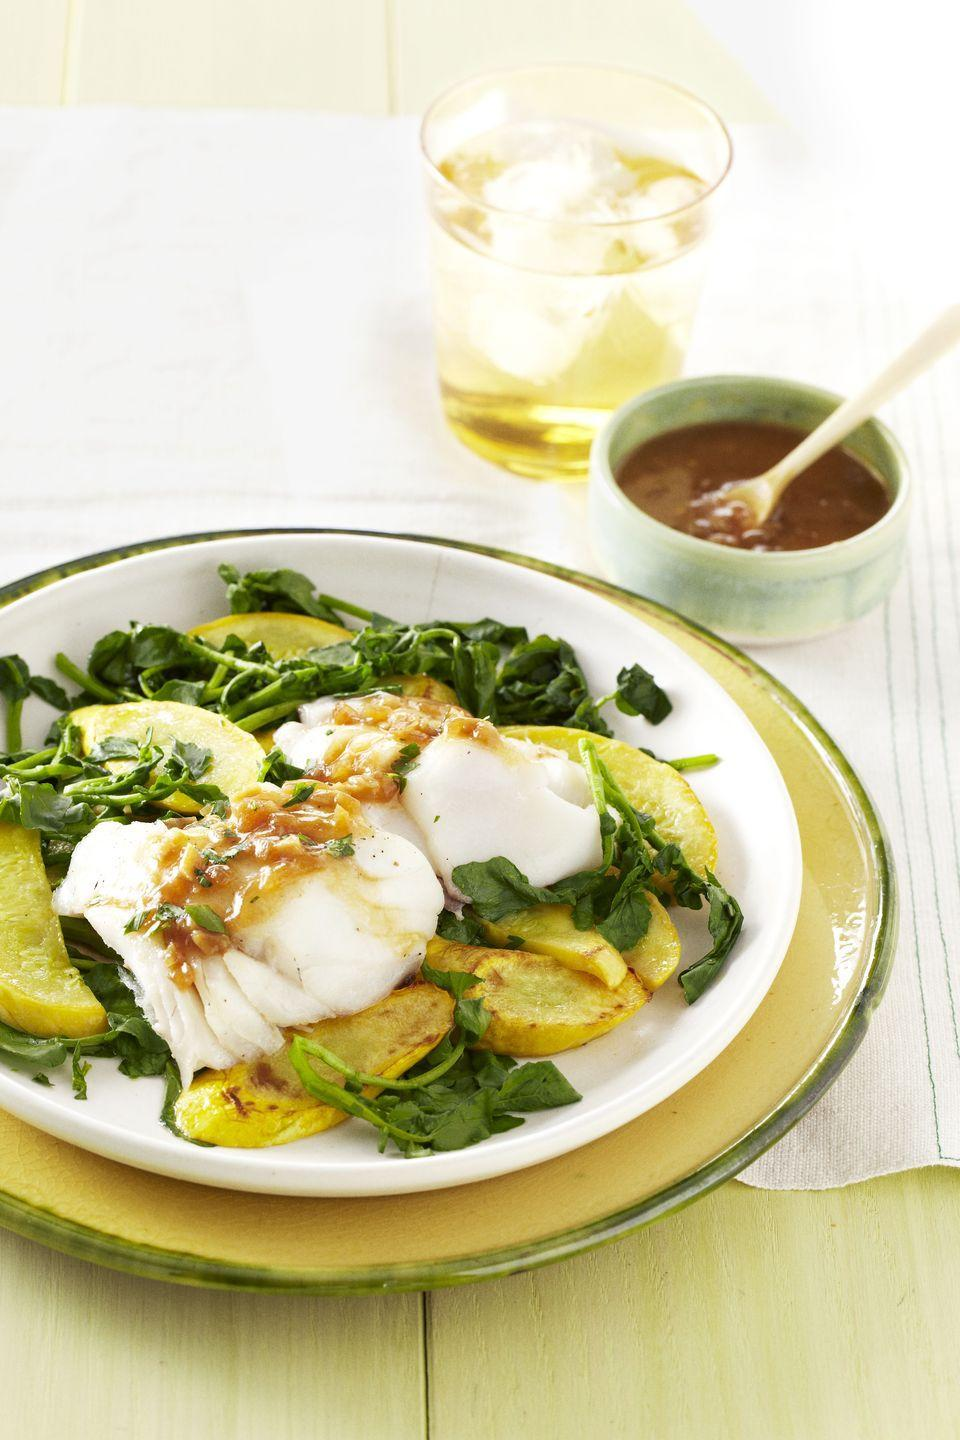 """<p>Composed of ginger, soy, vinegar, shallots, and hot sauce, this tangy sauce will forever change your tastebuds. You'll be spooning the stuff over everything. </p><p><em><a href=""""https://www.goodhousekeeping.com/food-recipes/a10934/ginger-shallot-cod-recipe-ghk0511/"""" rel=""""nofollow noopener"""" target=""""_blank"""" data-ylk=""""slk:Get the recipe for Ginger-Shallot Cod »"""" class=""""link rapid-noclick-resp"""">Get the recipe for Ginger-Shallot Cod »</a></em> </p>"""